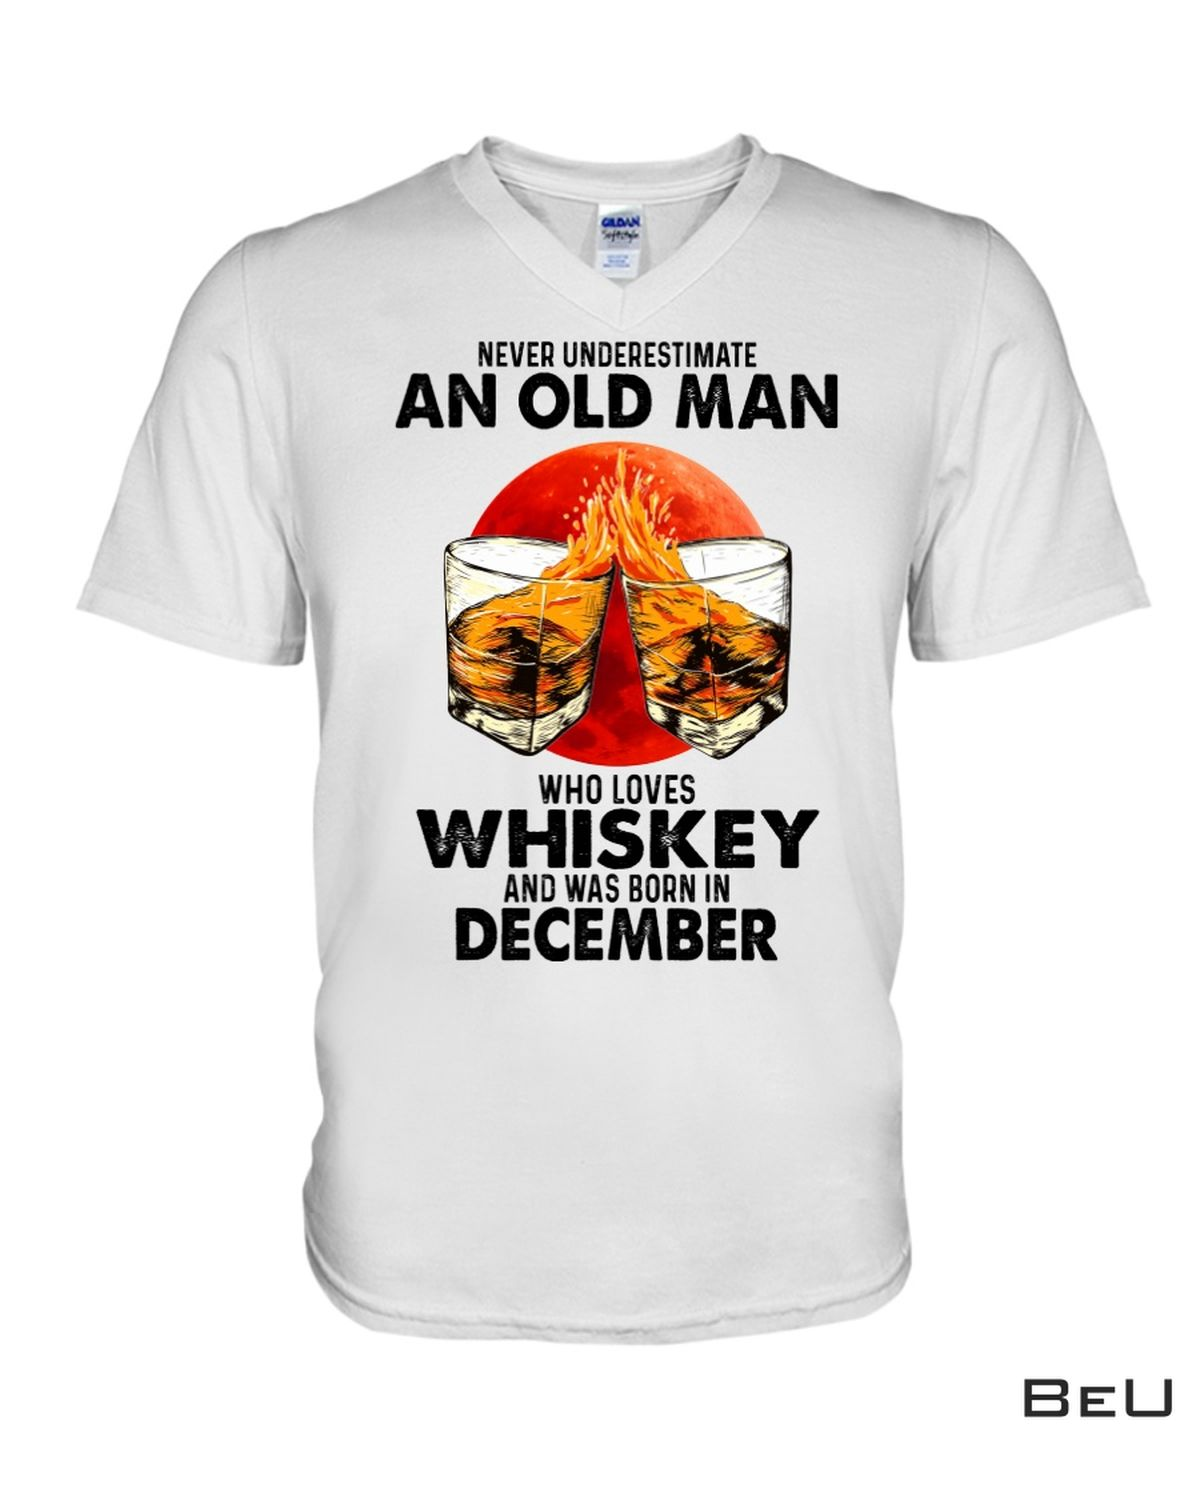 Free Never Underestimate An Old Man Who Love Whiskey And Born In December Shirt, hoodie, tank top